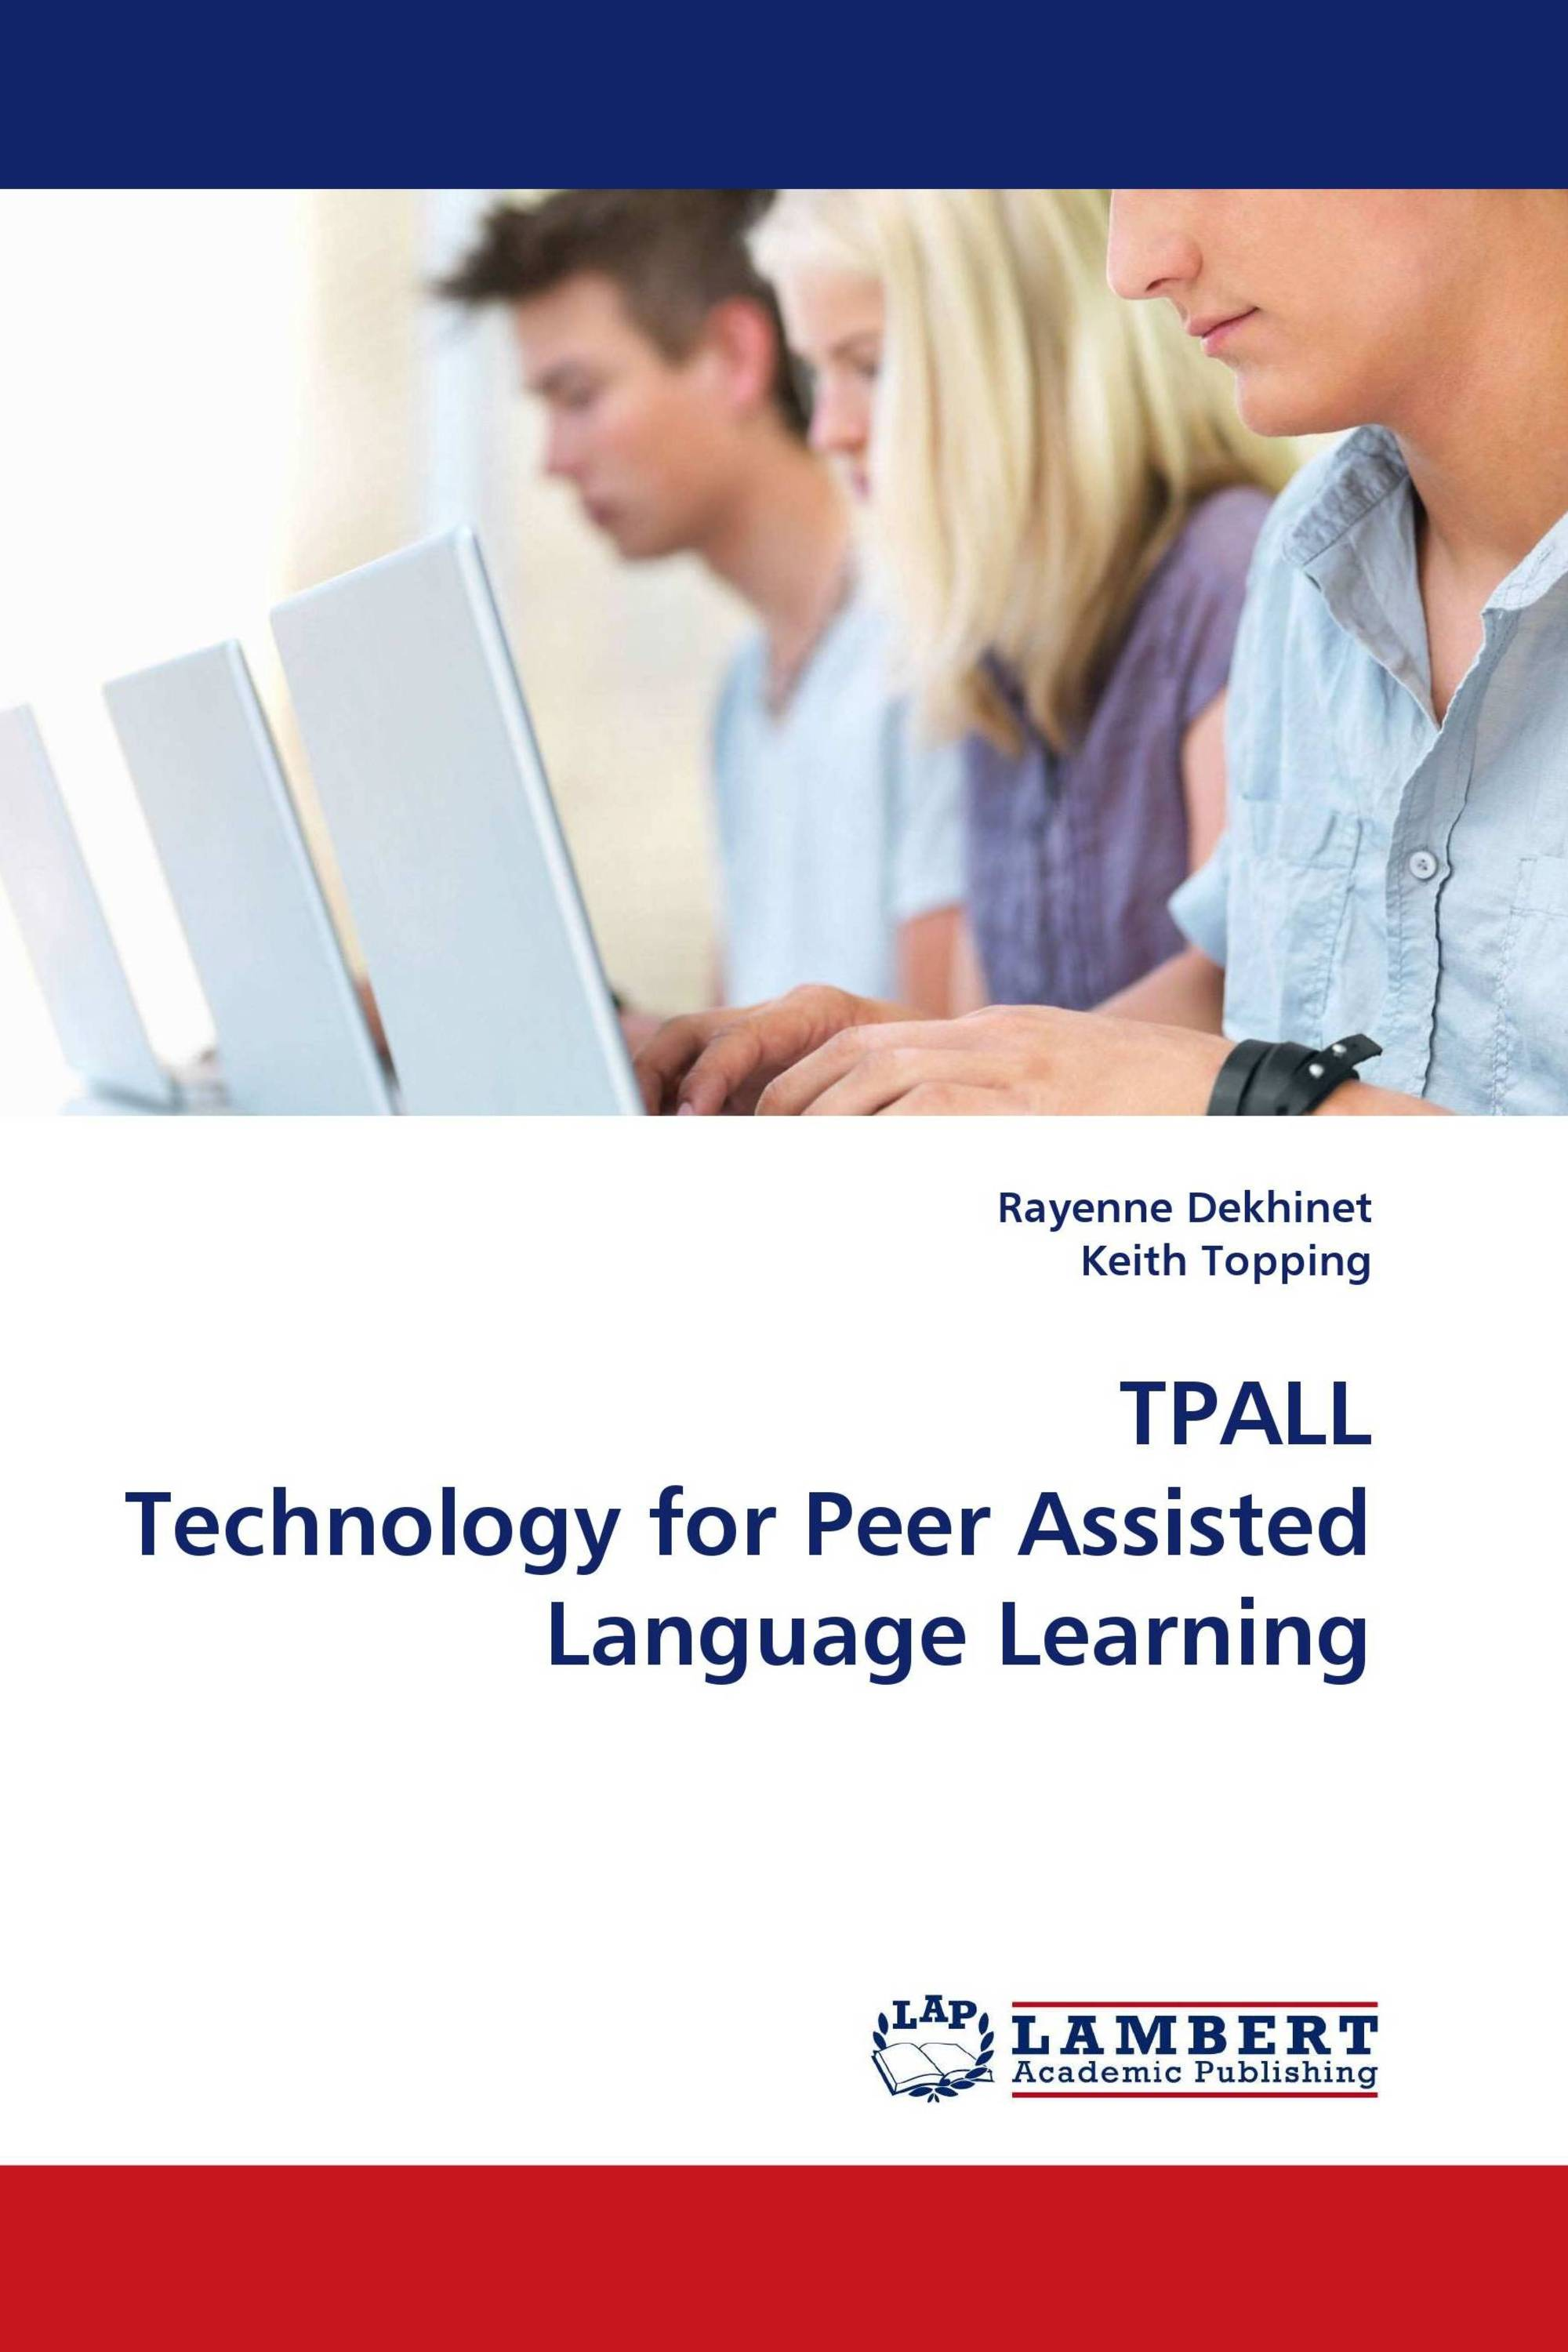 TPALL Technology for Peer Assisted Language Learning